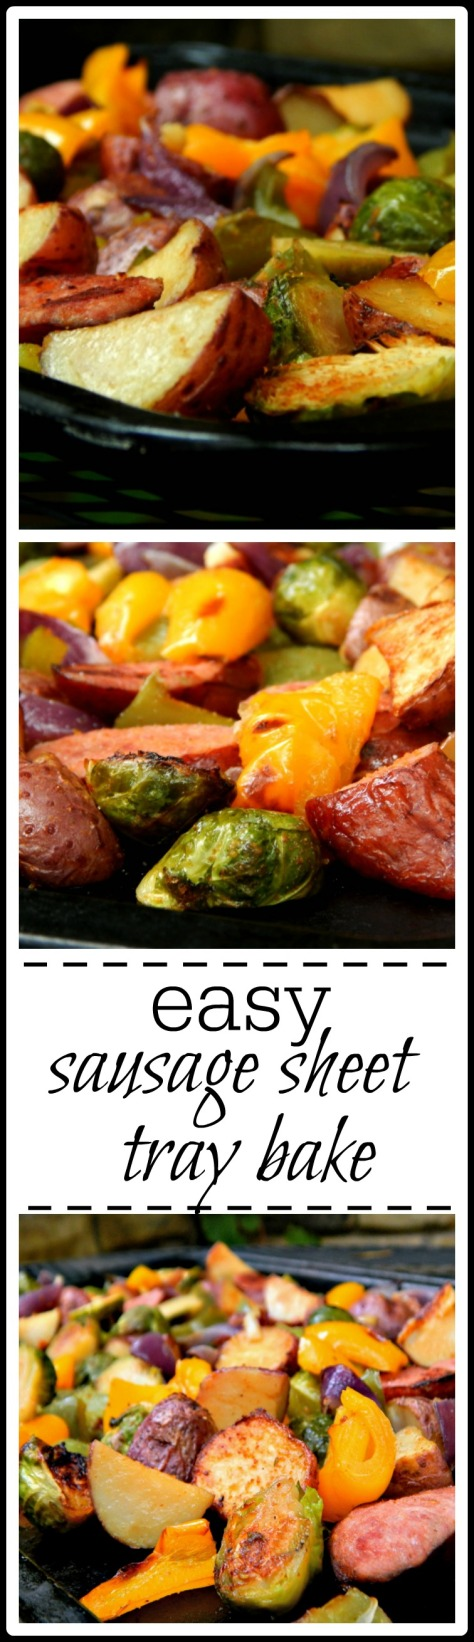 Easy Sausage & Potato Sheet Tray Bake